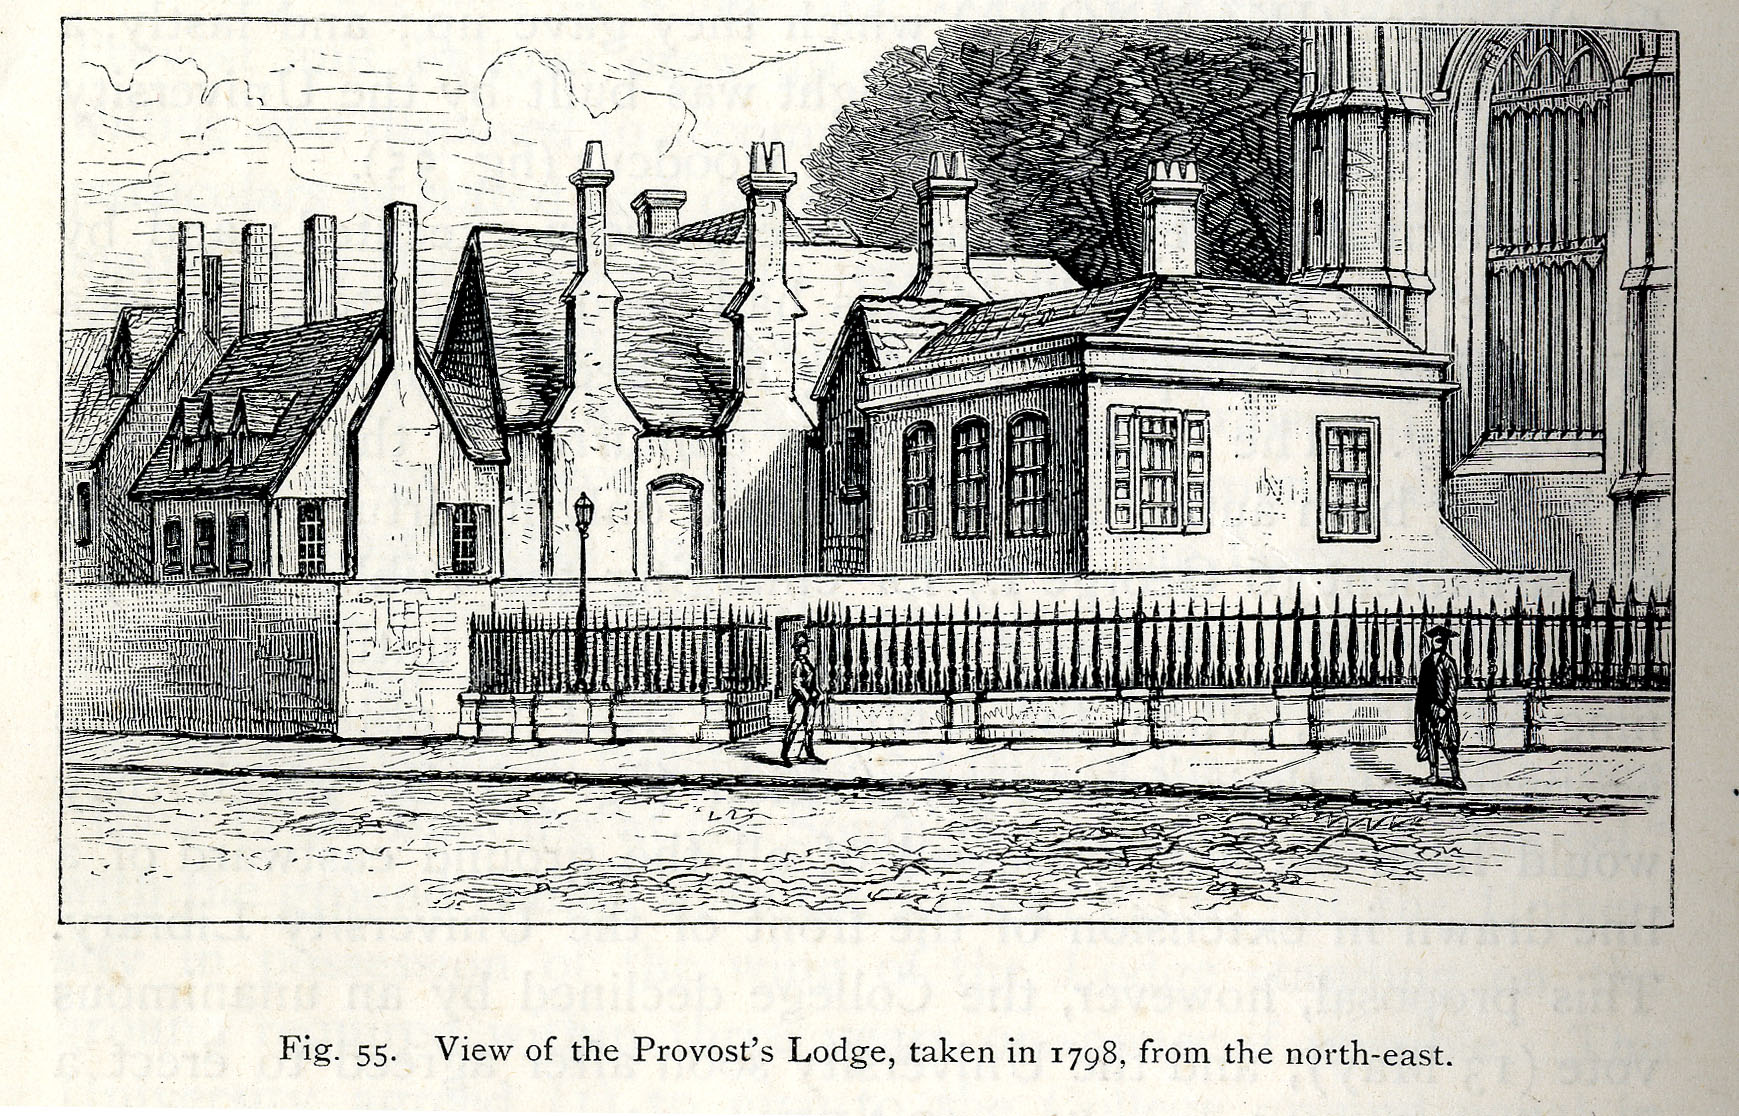 View of the Provost's Lodge, taken in 1798, from the north-east (Willis and Clark, vol. 1, p. 544, fig. 55).